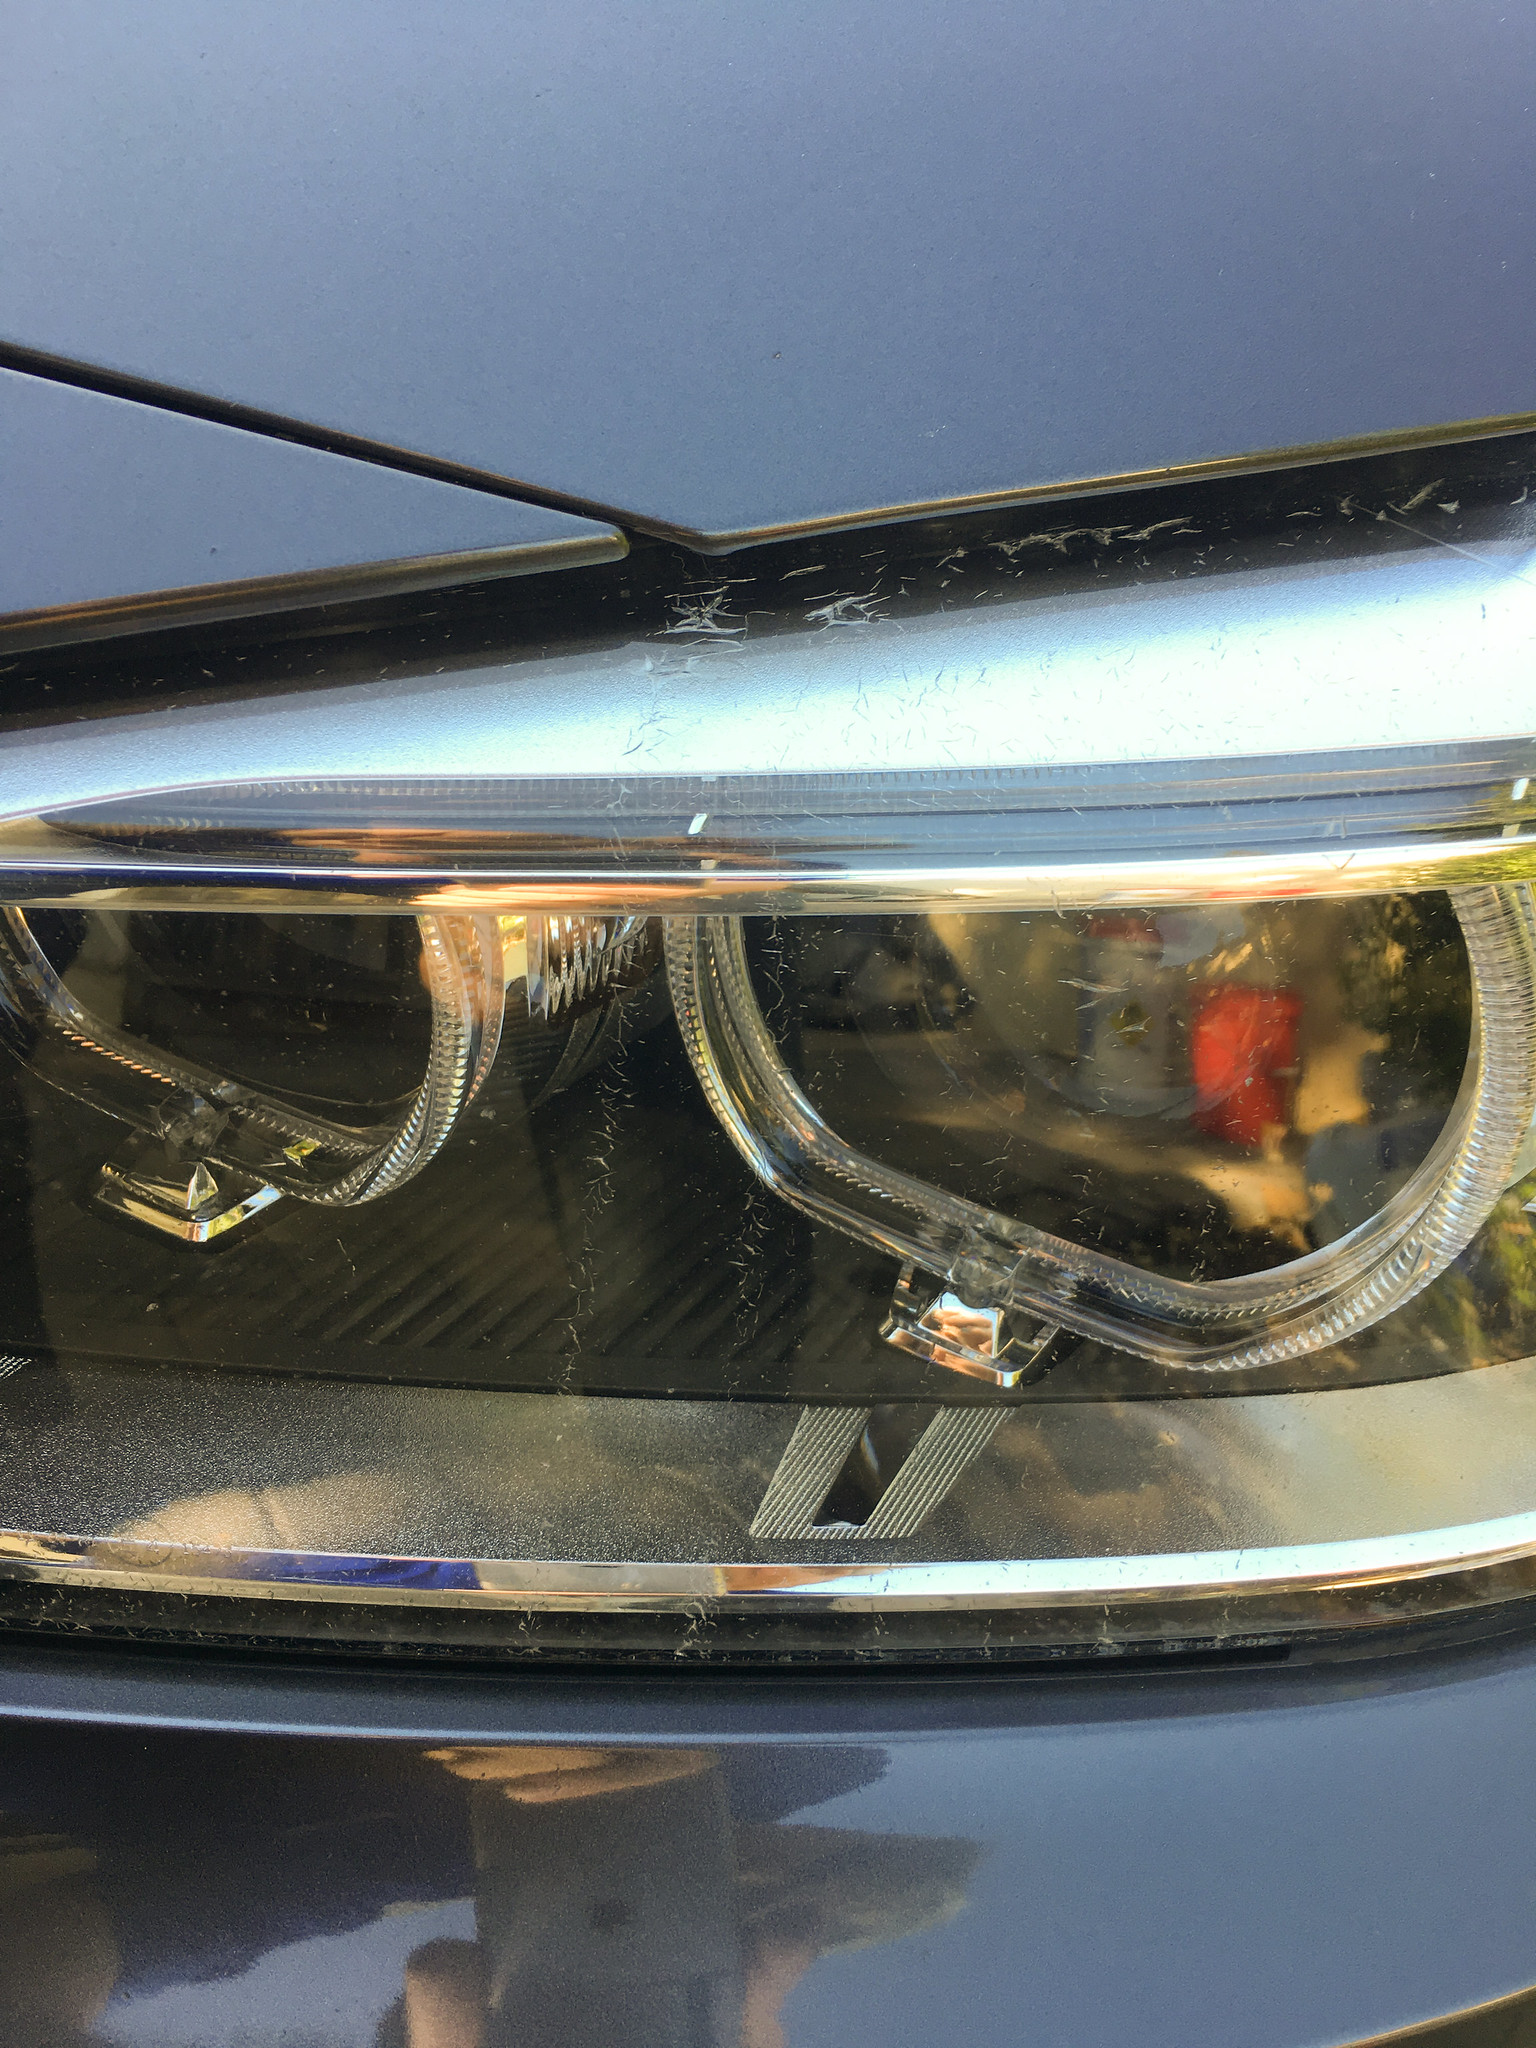 Cracks on headlights both sides, Does warranty cover?